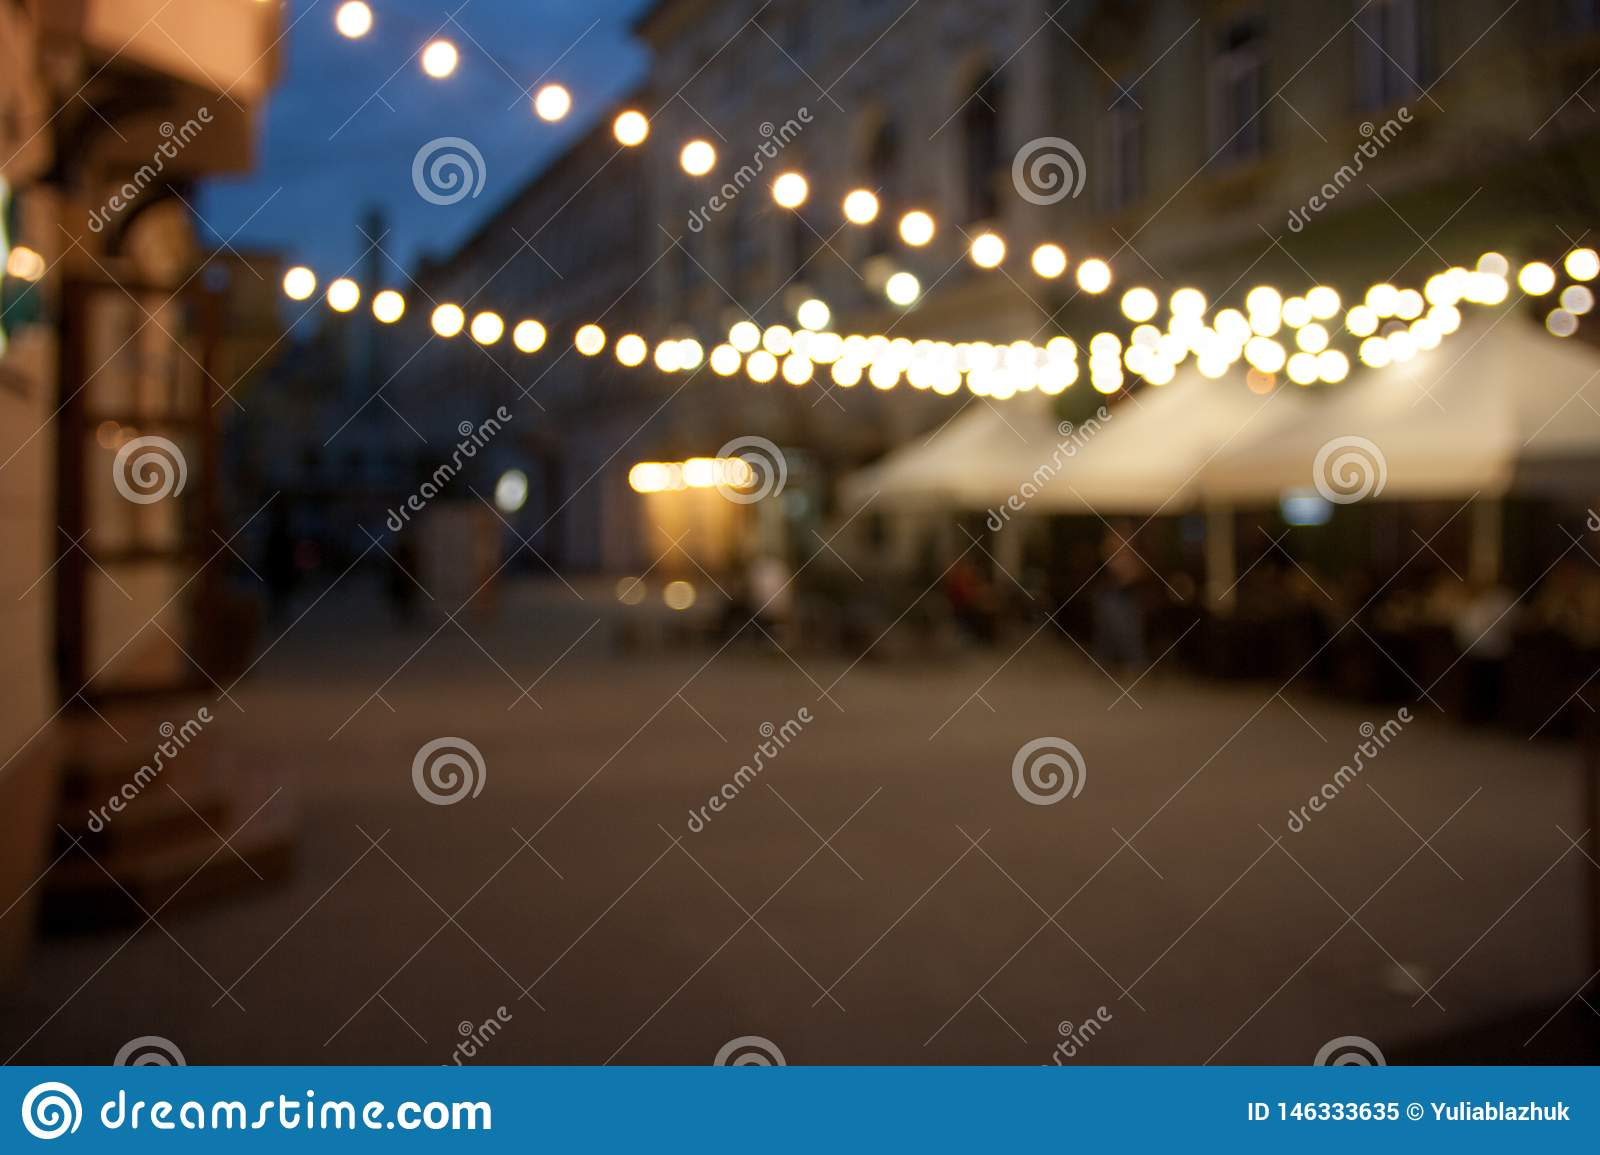 Blurred night city empty street background with bokeh